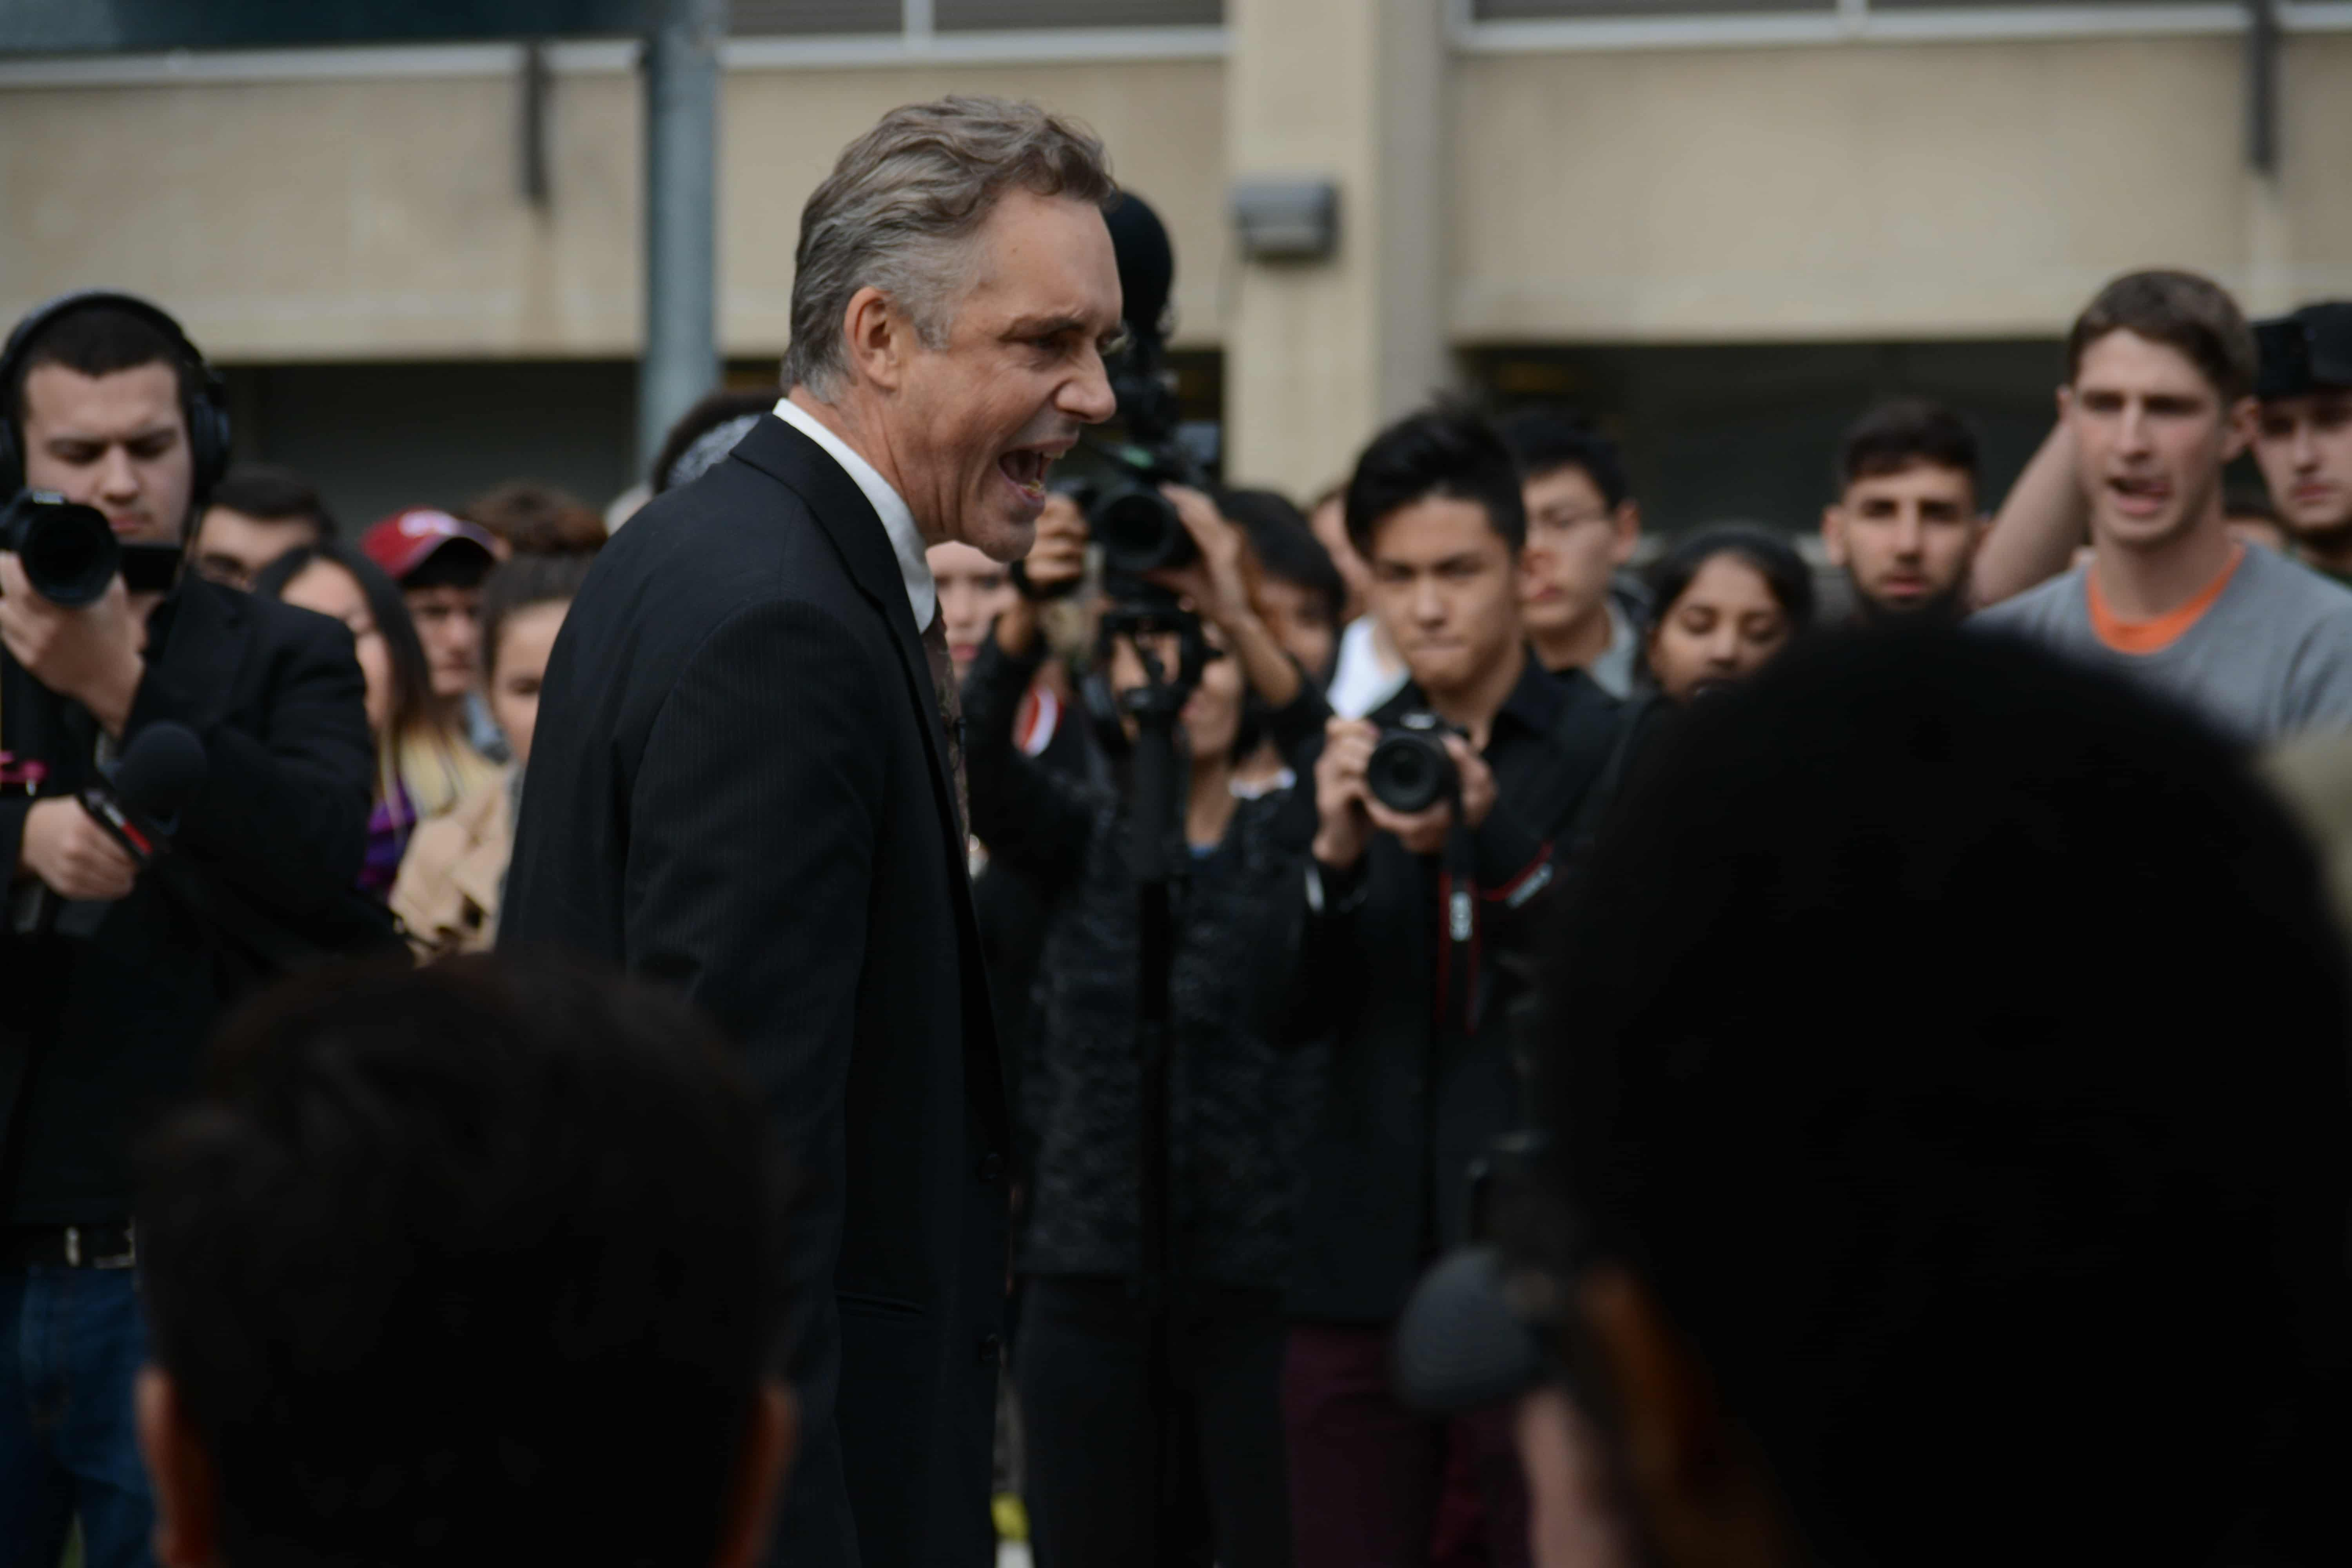 Mother And Daughter Wallpaper Quotes The Explainer Timeline Of The Jordan Peterson Controversy